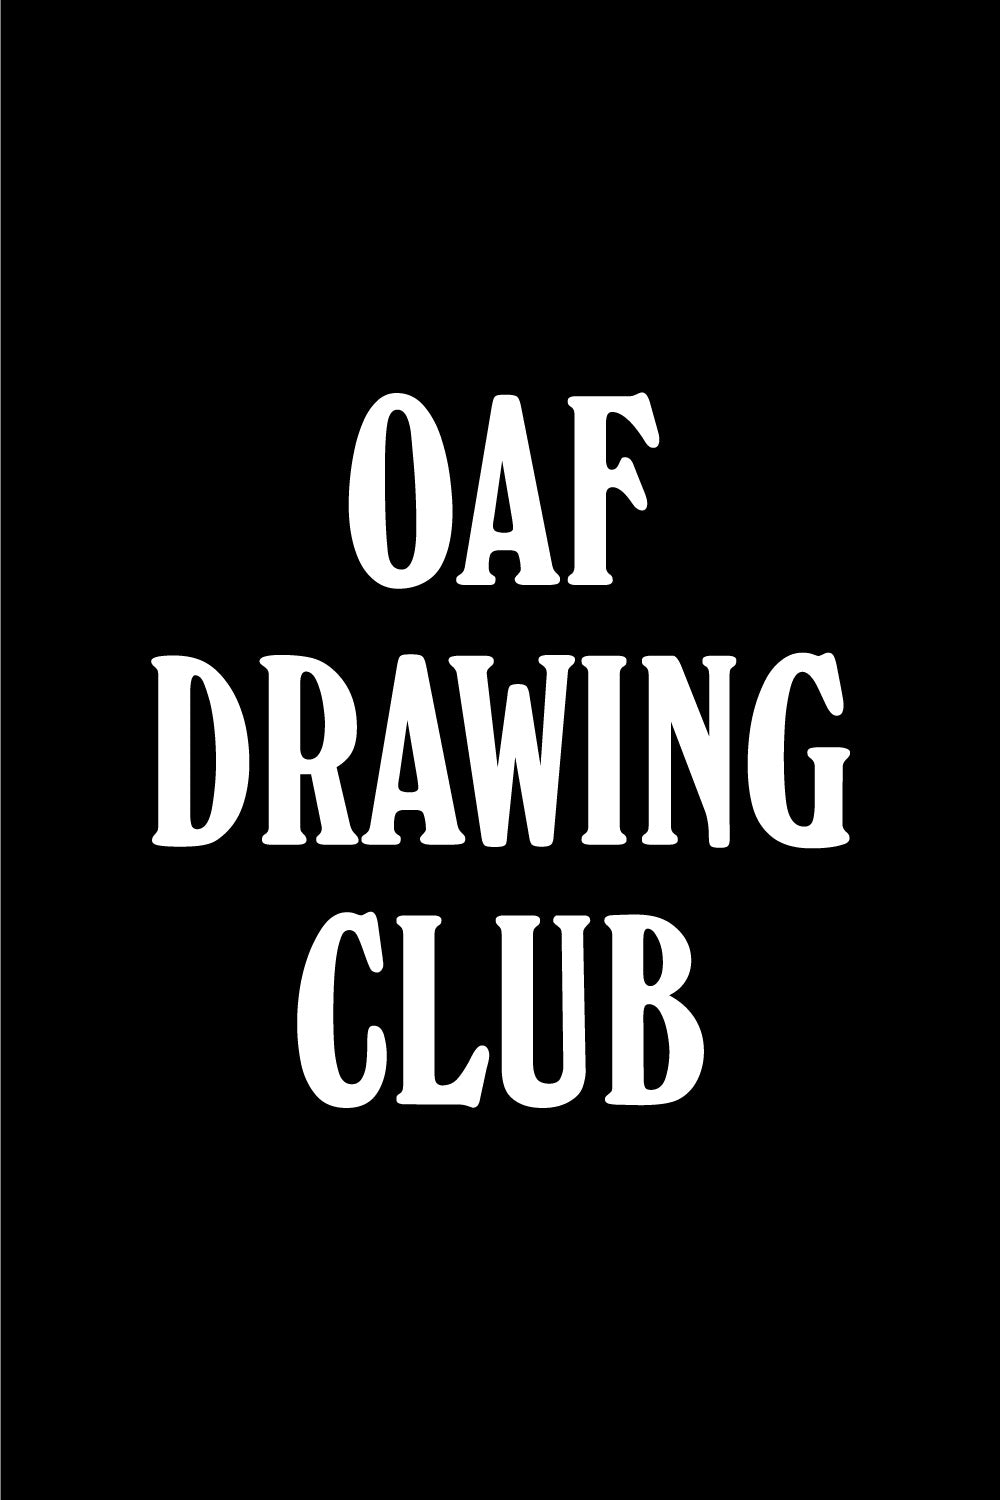 Oaf Drawing Club